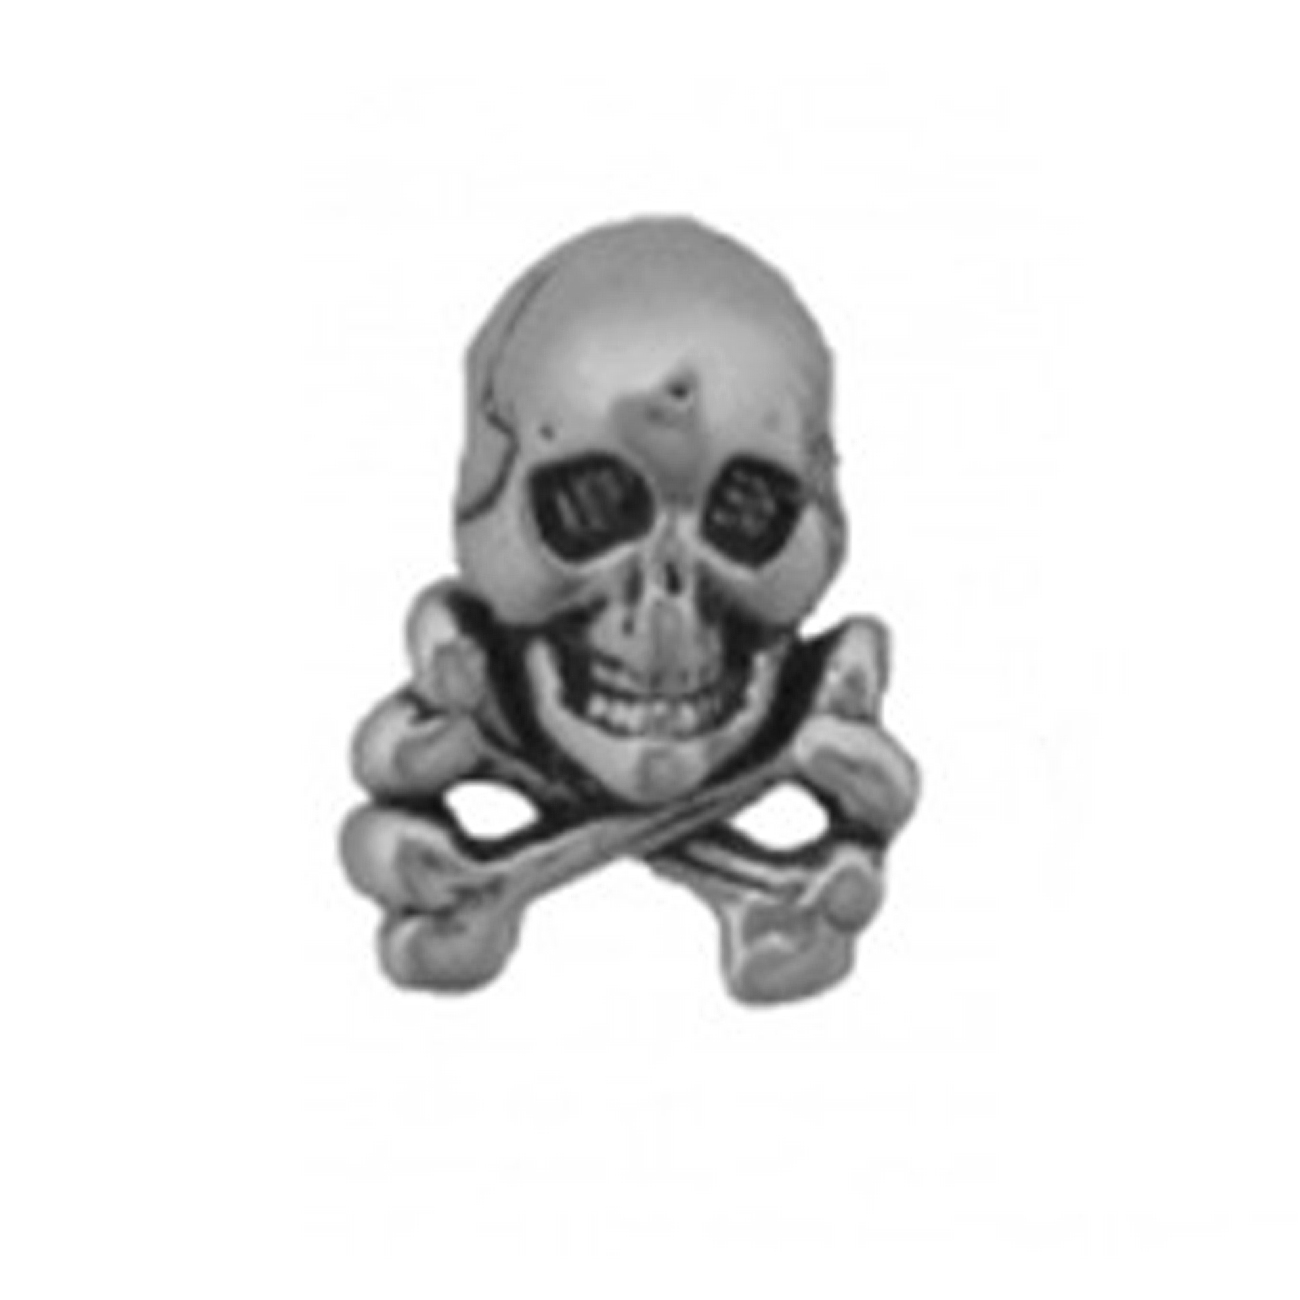 Pirates Jolly Roger Skull And Crossbones Single Post Earring